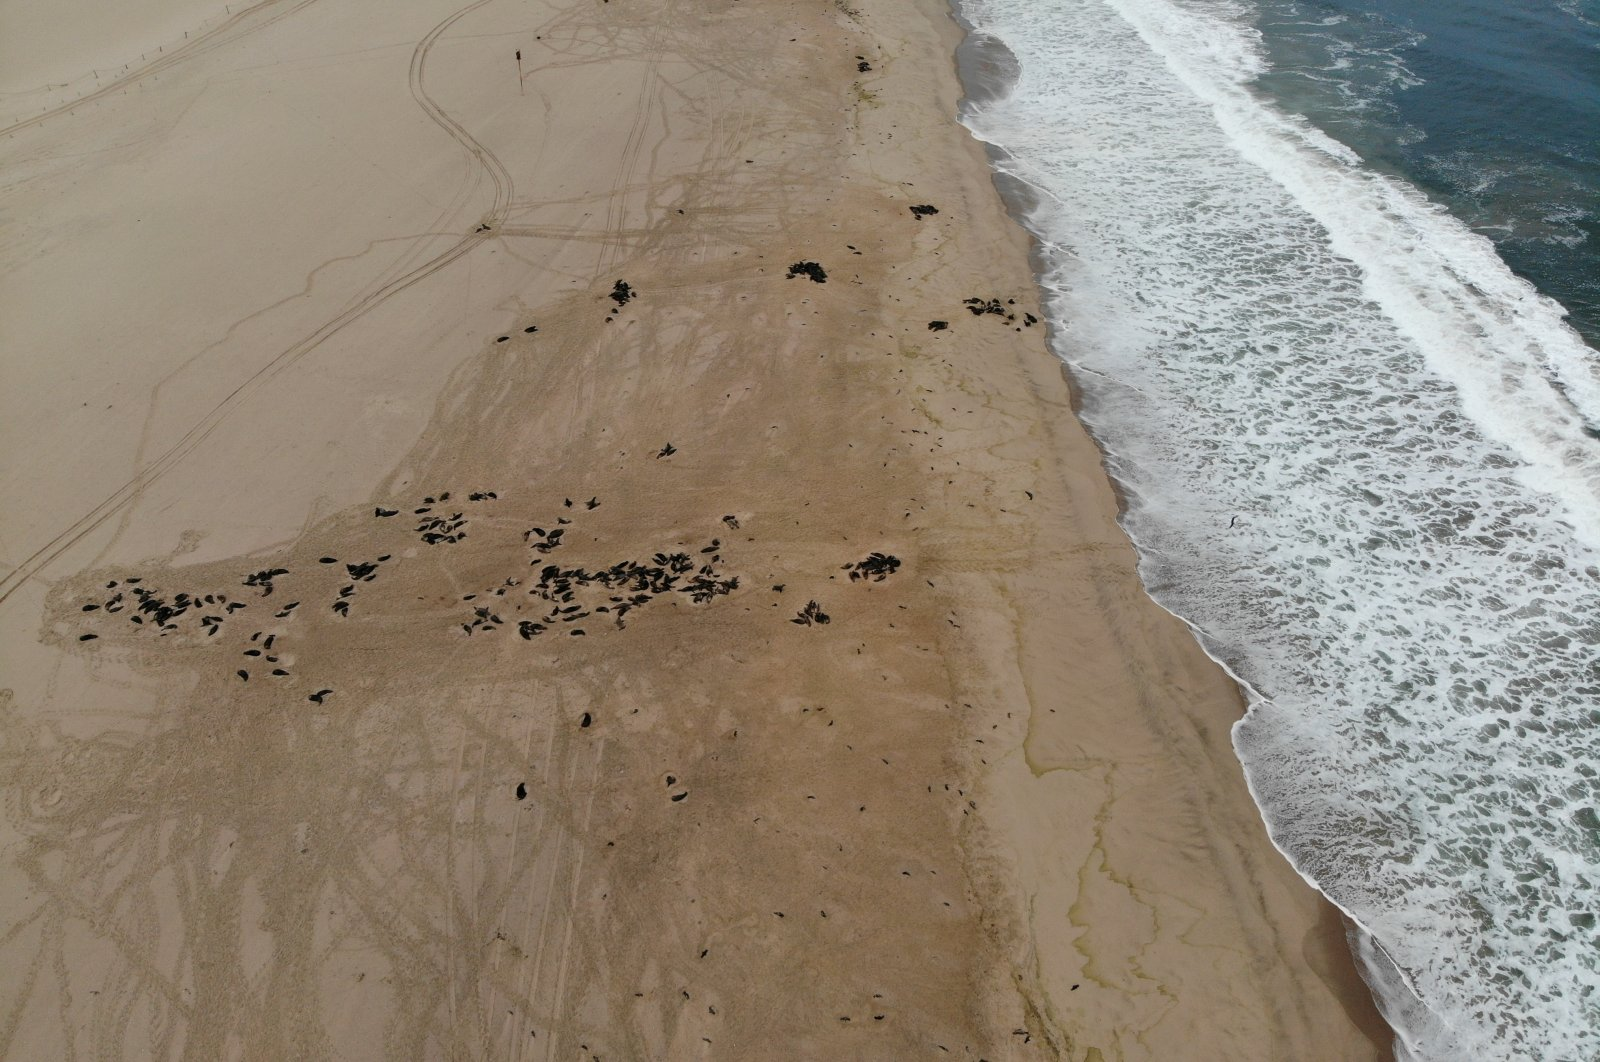 Dead seal foetuses are seen near adult seals on a beach near Pelican Point, Namibia October 8, 2020. Picture taken with a drone on October 8, 2020. (Naude Dreyer/Ocean Conservation Namibia/Handout via Reuters)